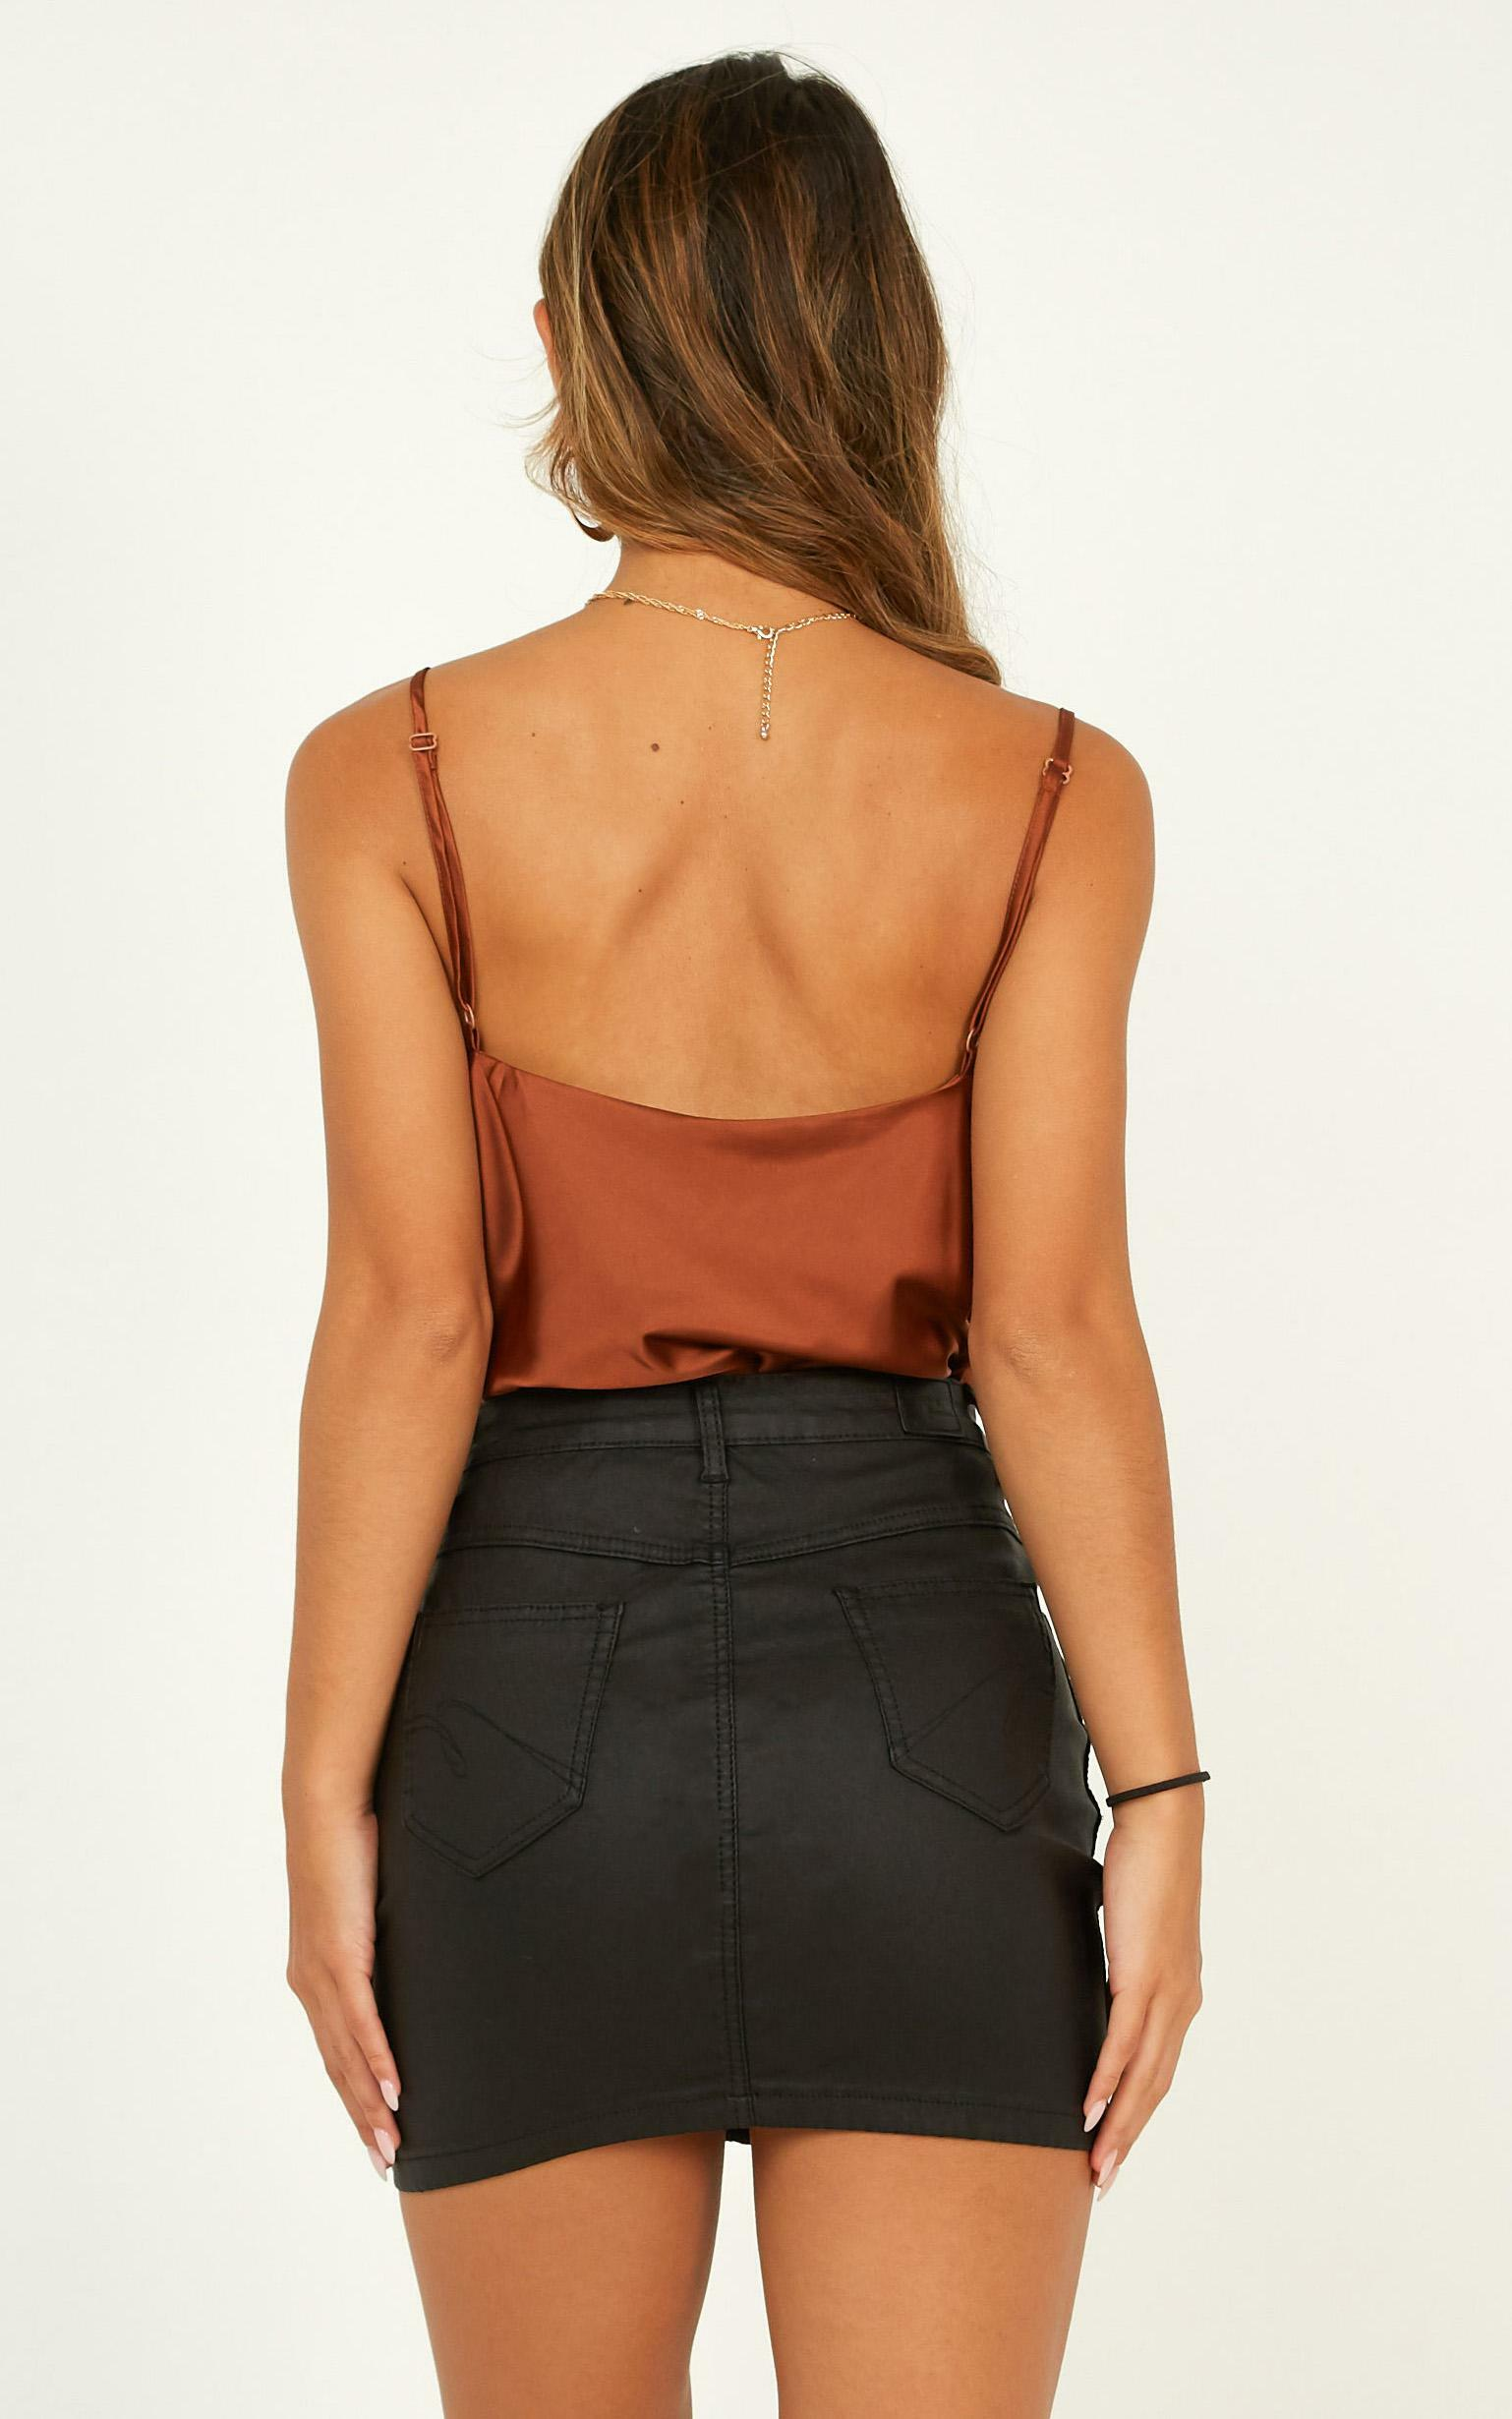 Straight Line top in chocolate satin - 12 (L), Brown, hi-res image number null